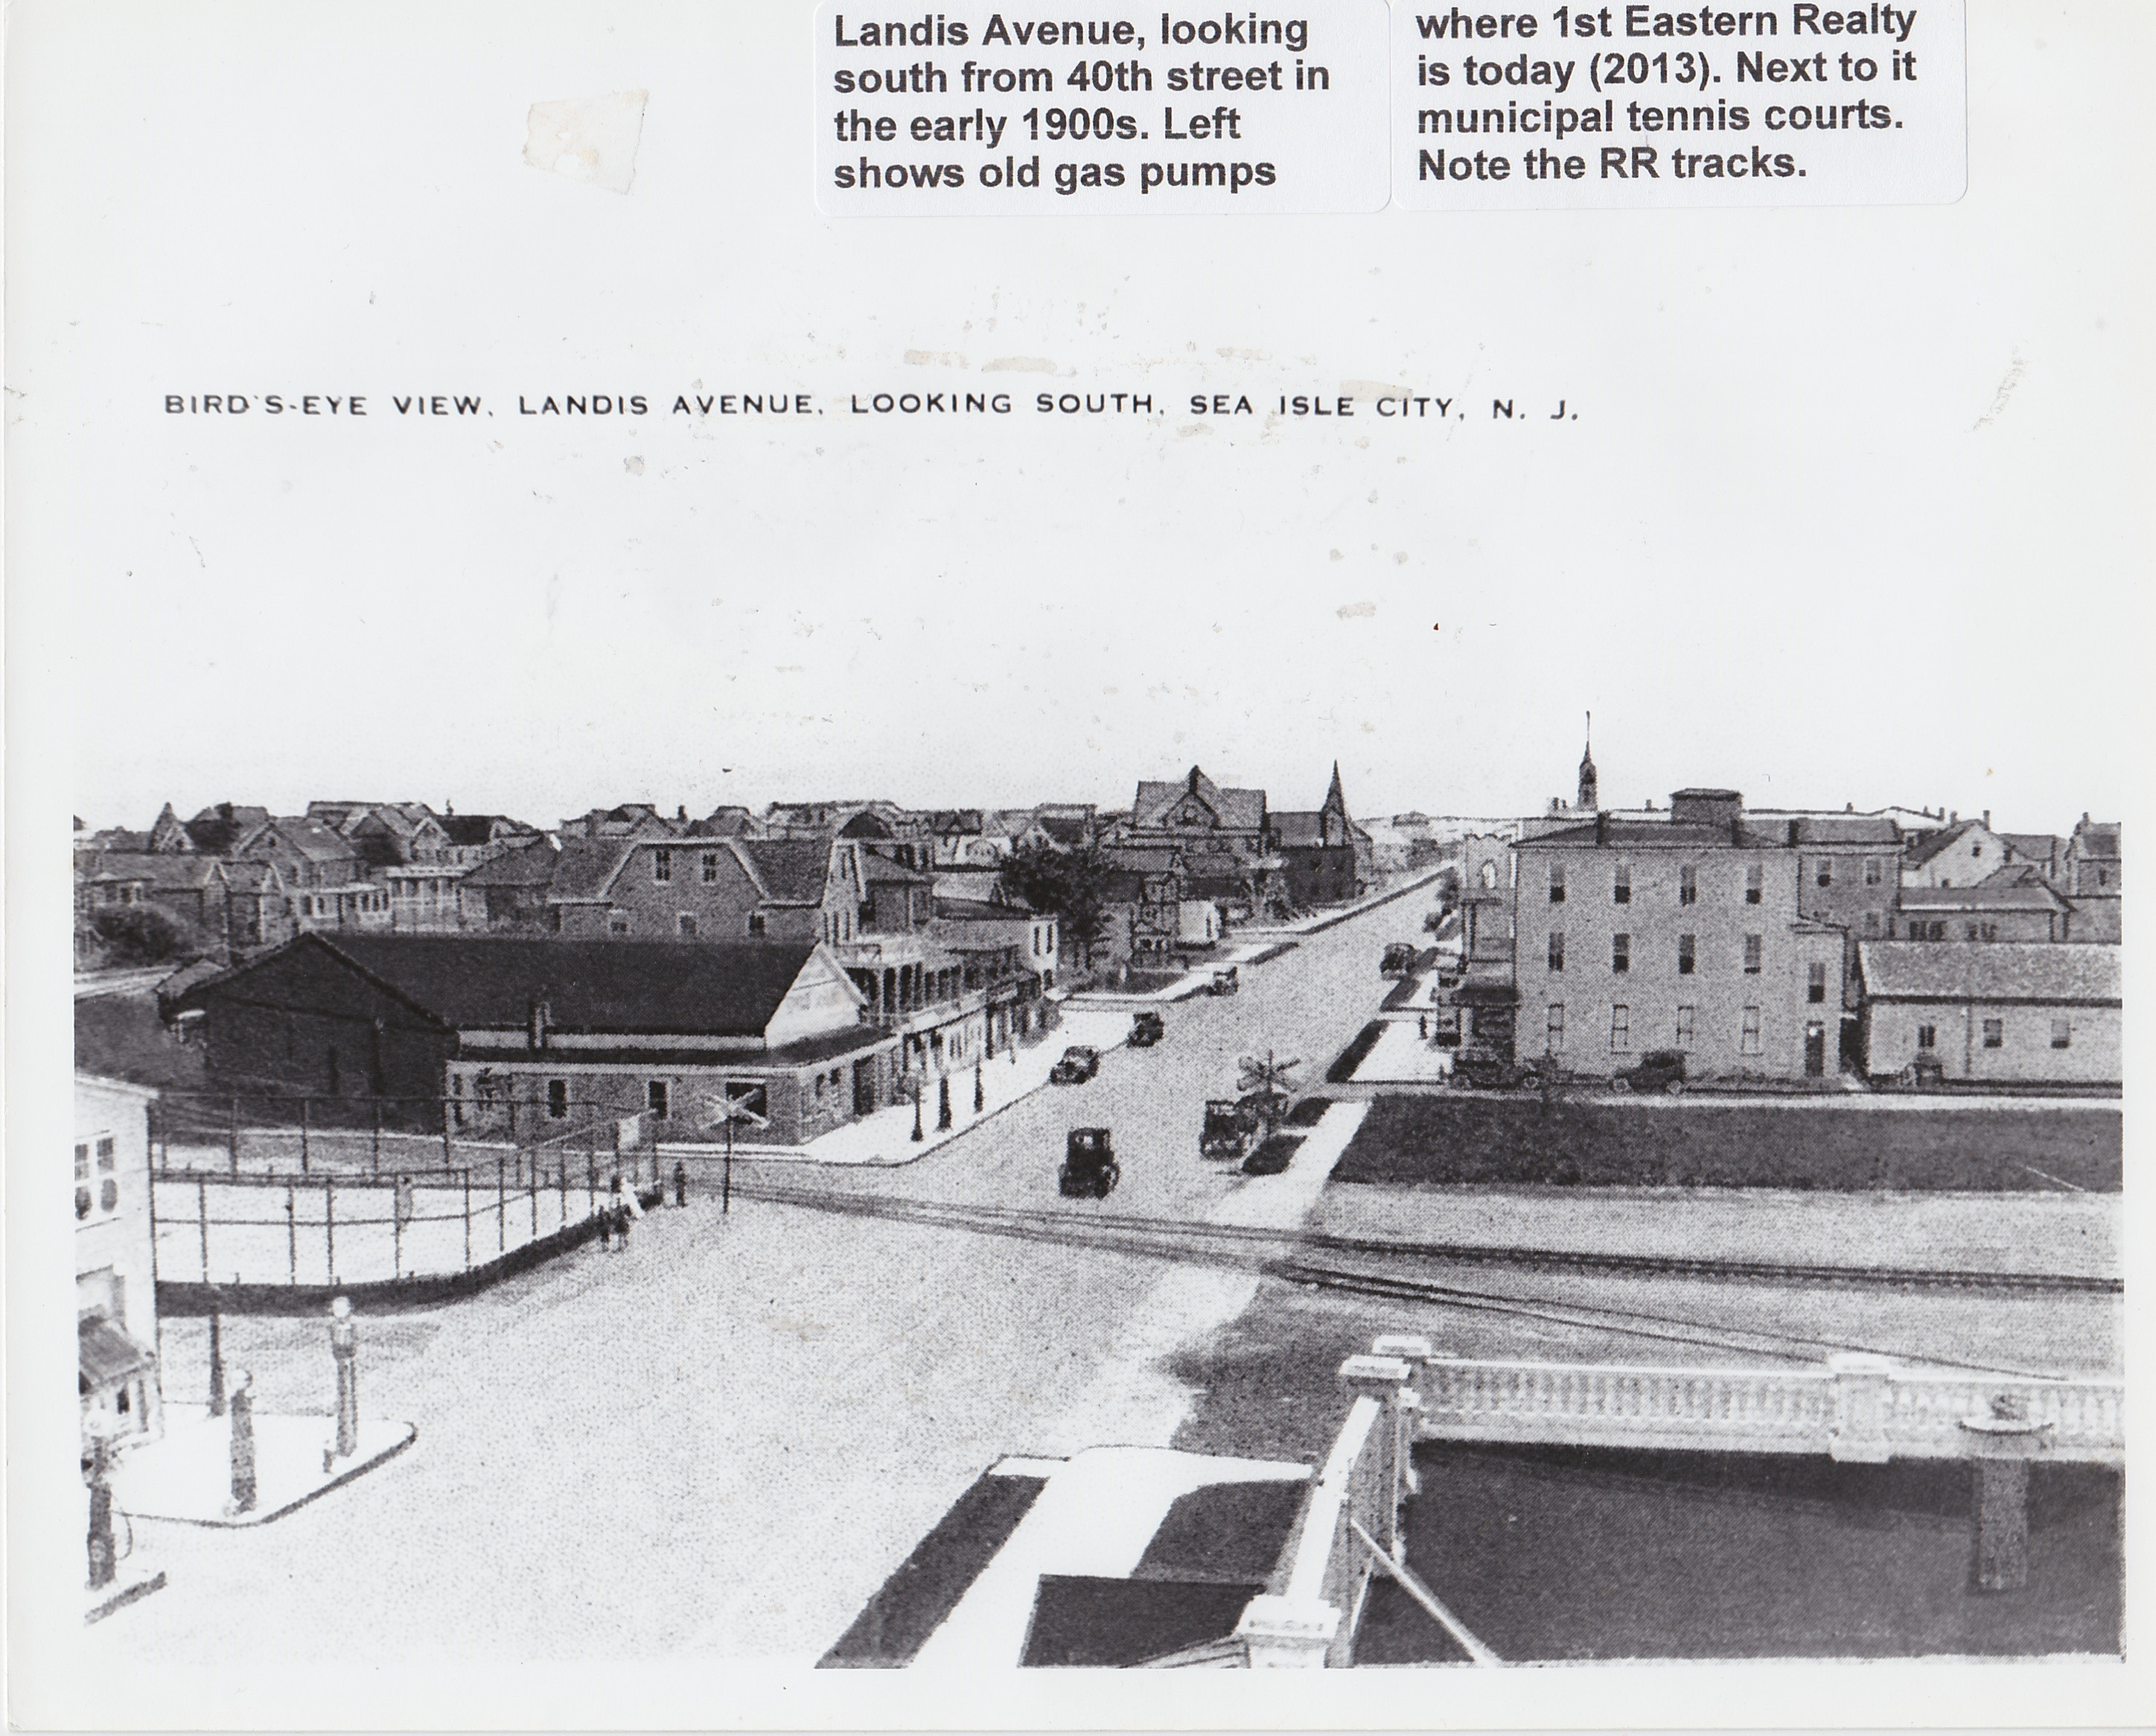 Landis Ave Early 1900s